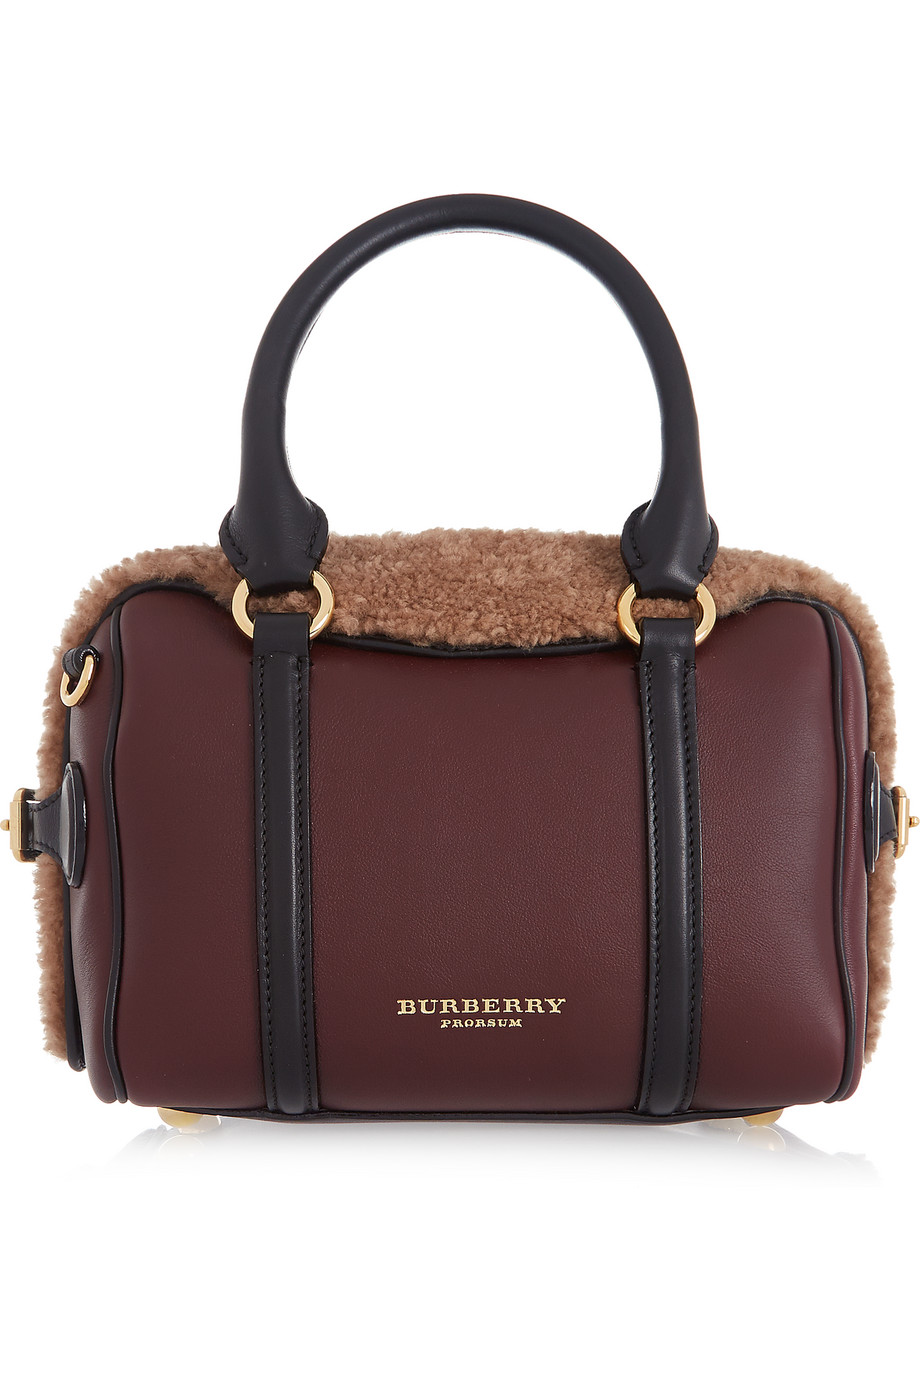 Prorsum Shearling and Leather Tote, Burberry Prorsum, Burgundy, Women's, Size: One Size